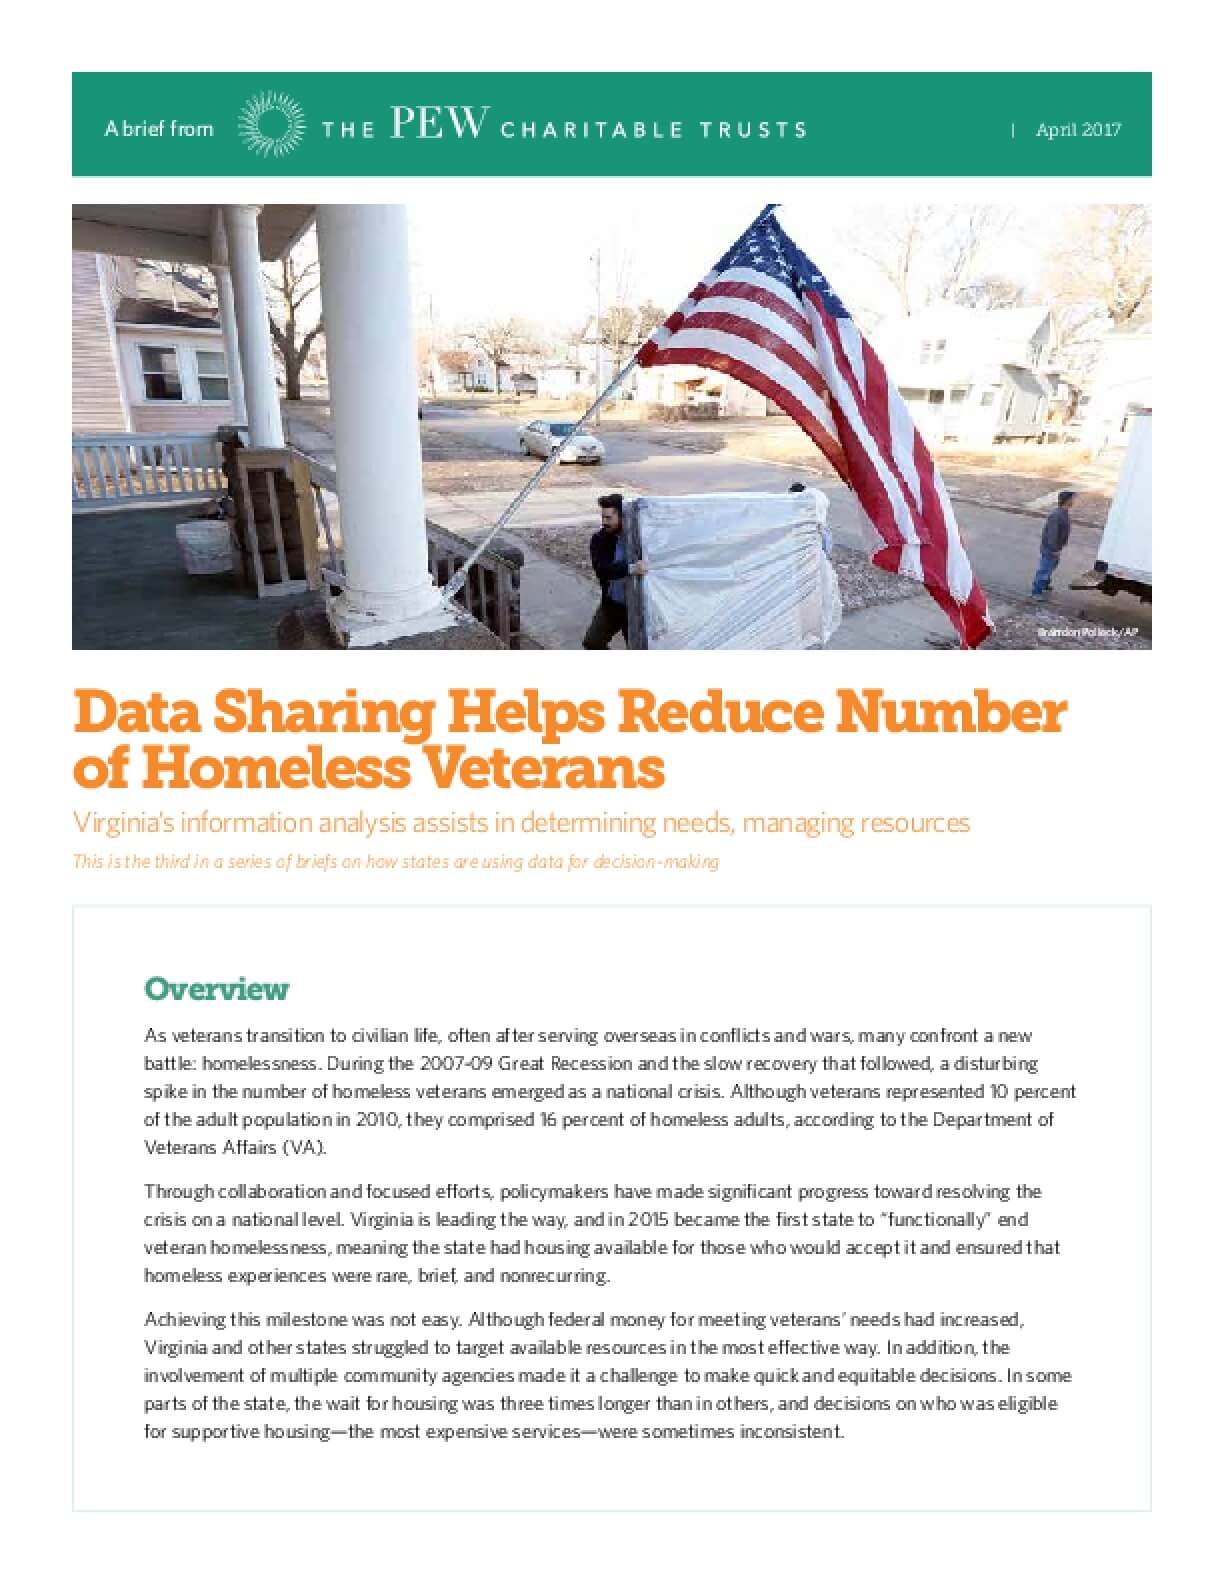 Data Sharing Helps Reduce Number of Homeless Veterans